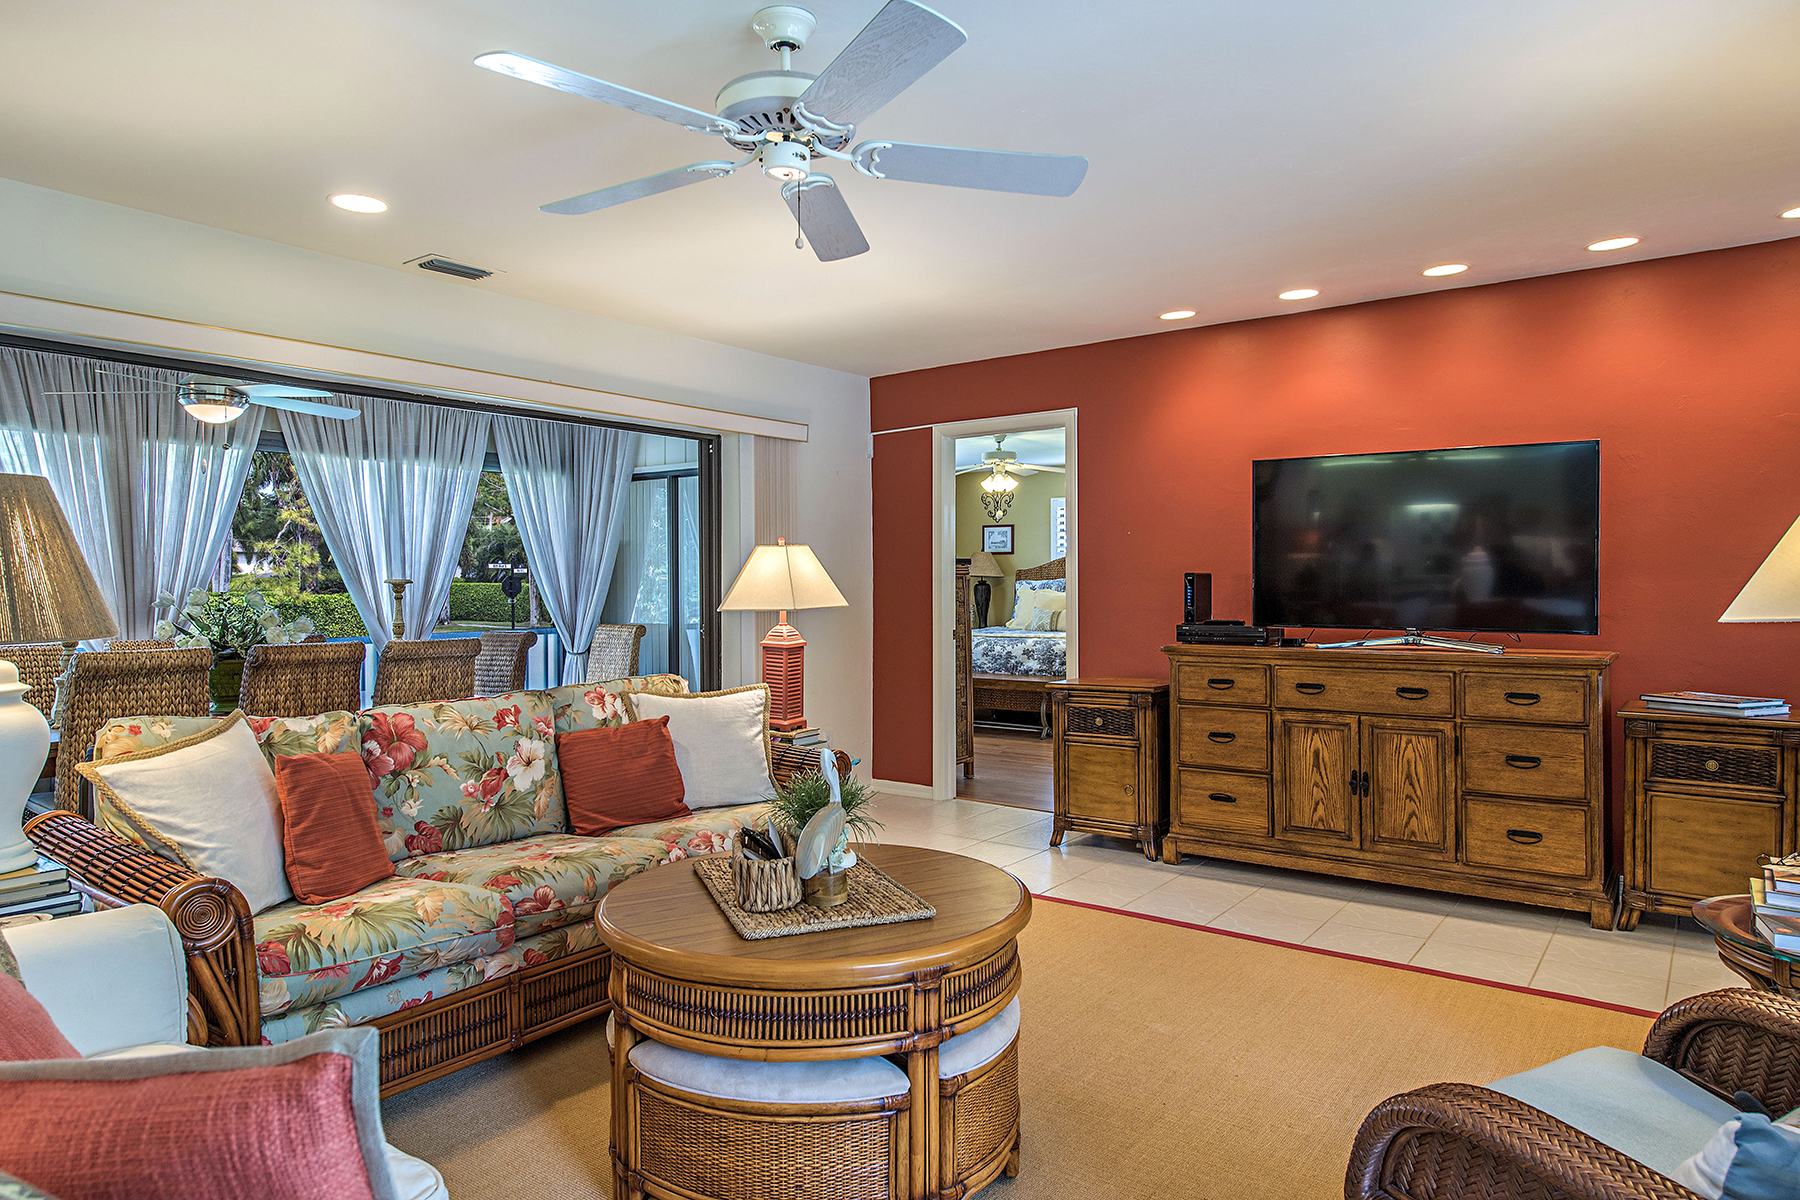 Condominium for Sale at OLDE NAPLES - GLOUCESTR BAY 880 8th Ave S 301 Naples, Florida, 34102 United States